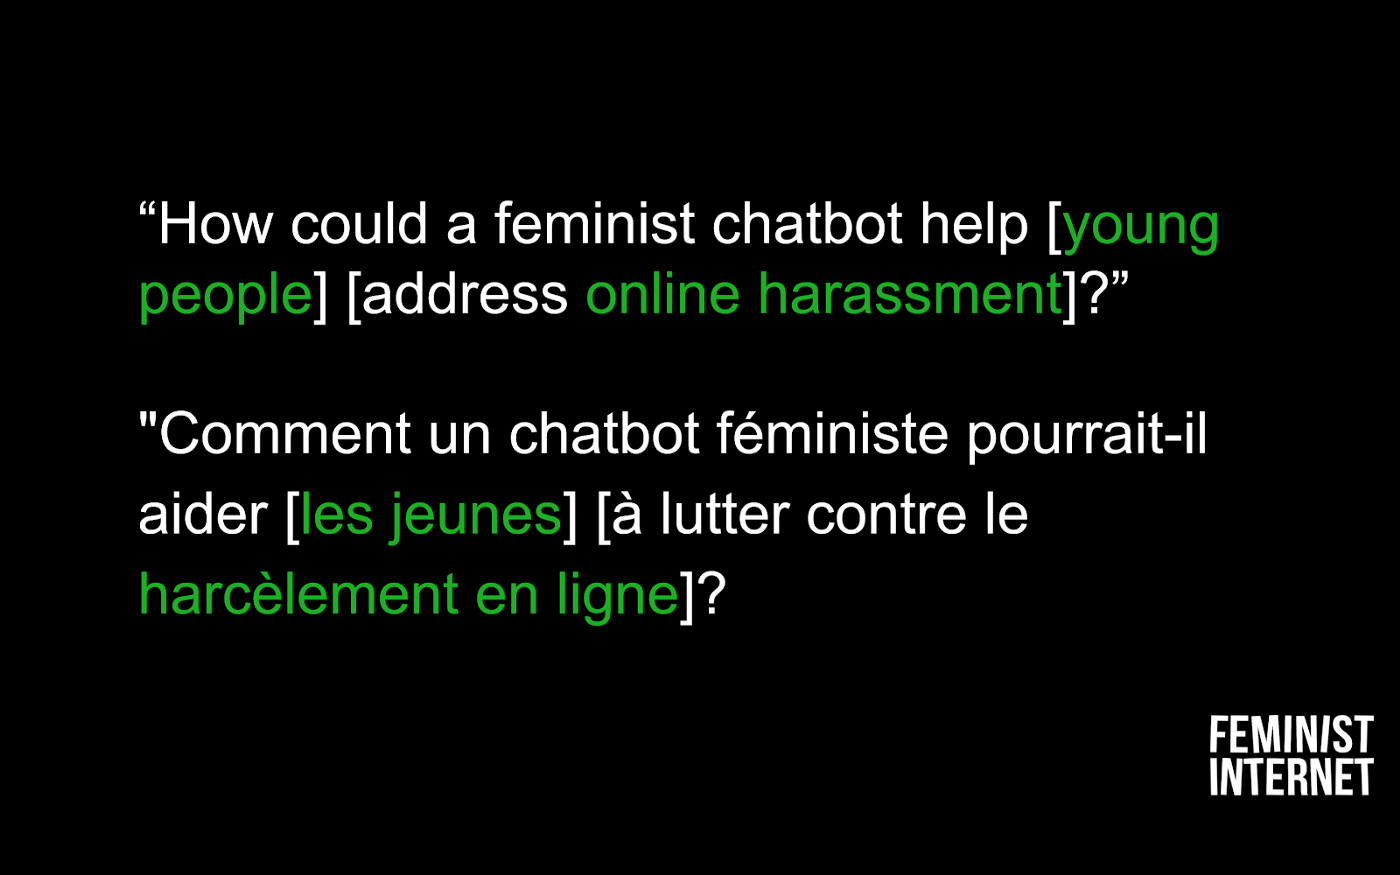 Screenshot of a workshop slide asking 'How could a feminist chatbot help young people address online harassment?'